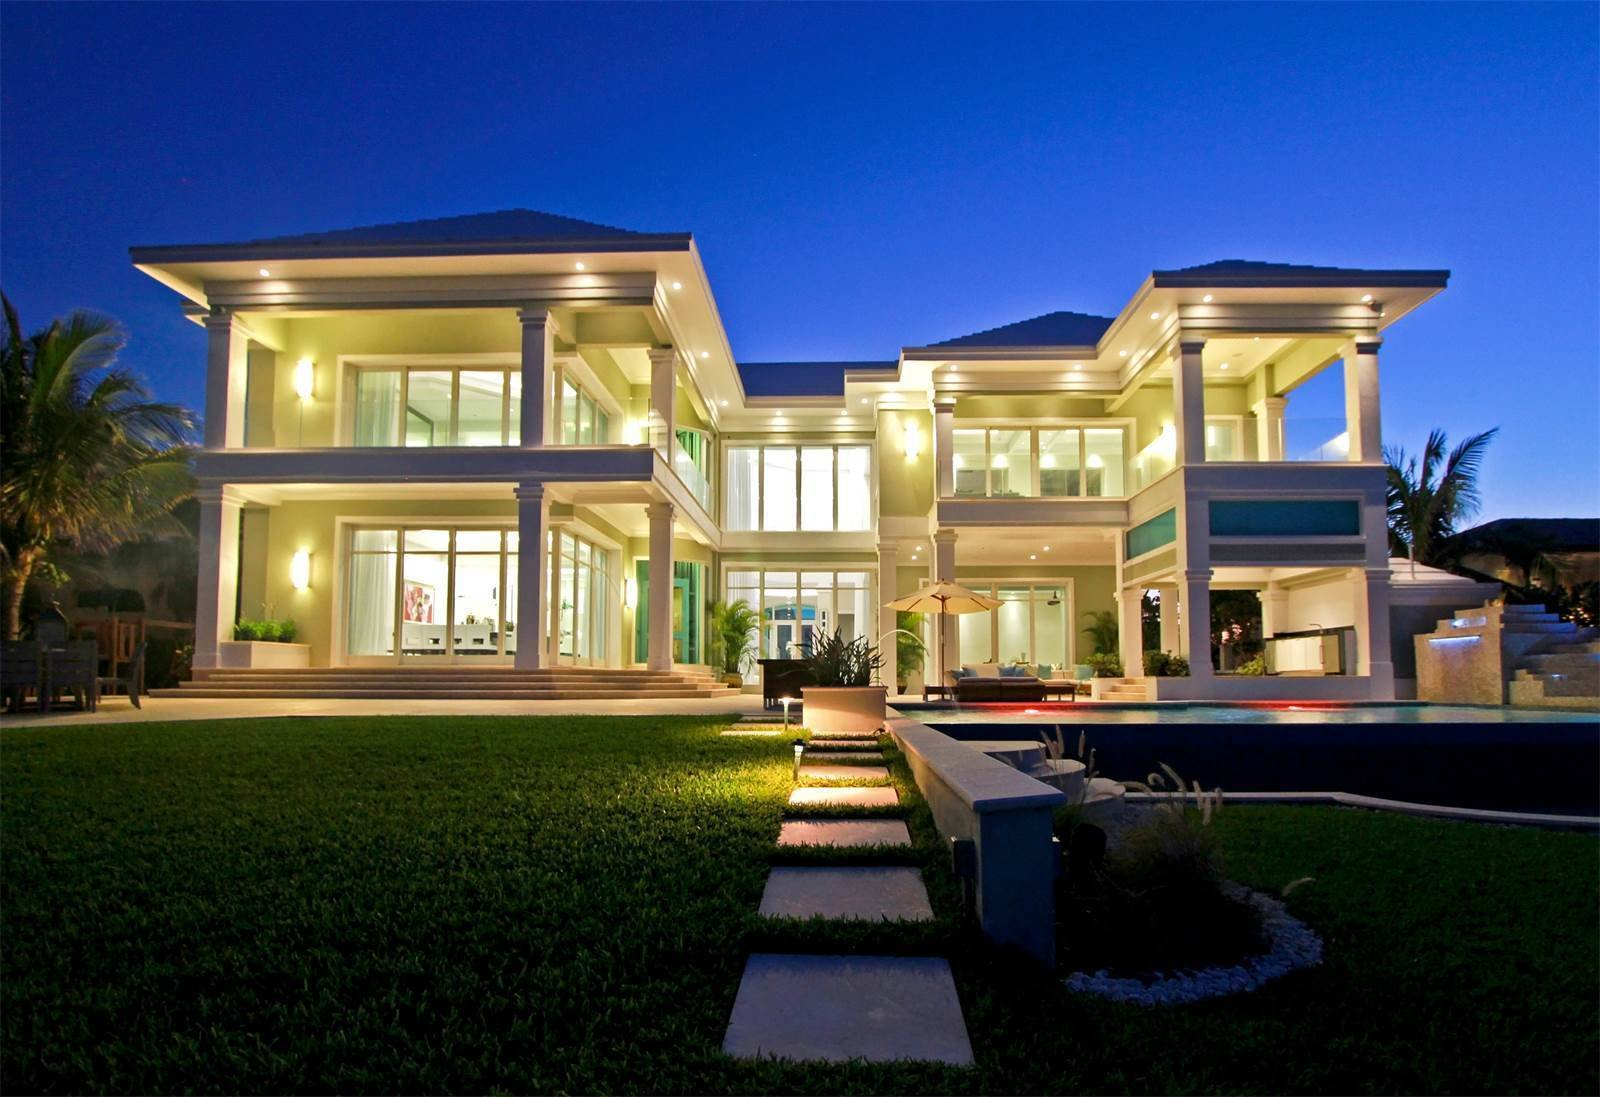 Photo 8 of 9 in Get Smart: Tech-Forward Homes Around the Globe